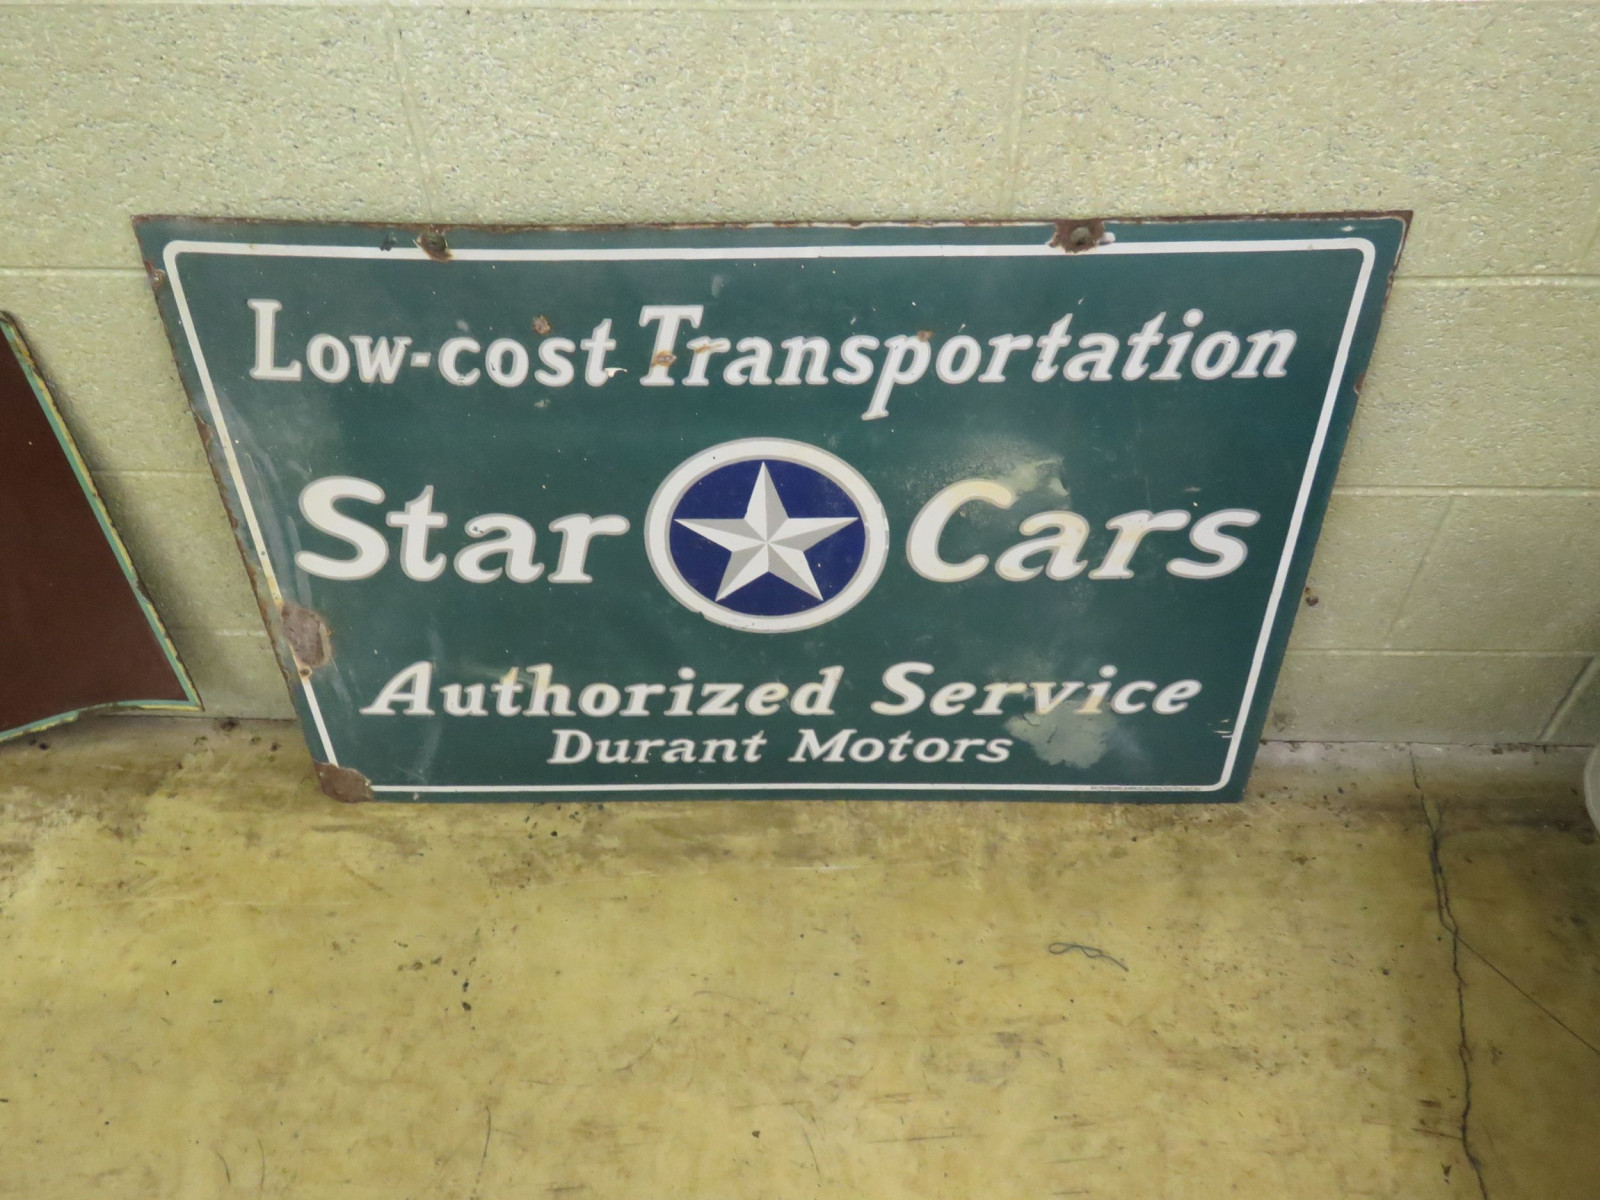 Star Cars-Durant Cars Porcelain Sign - Image 1